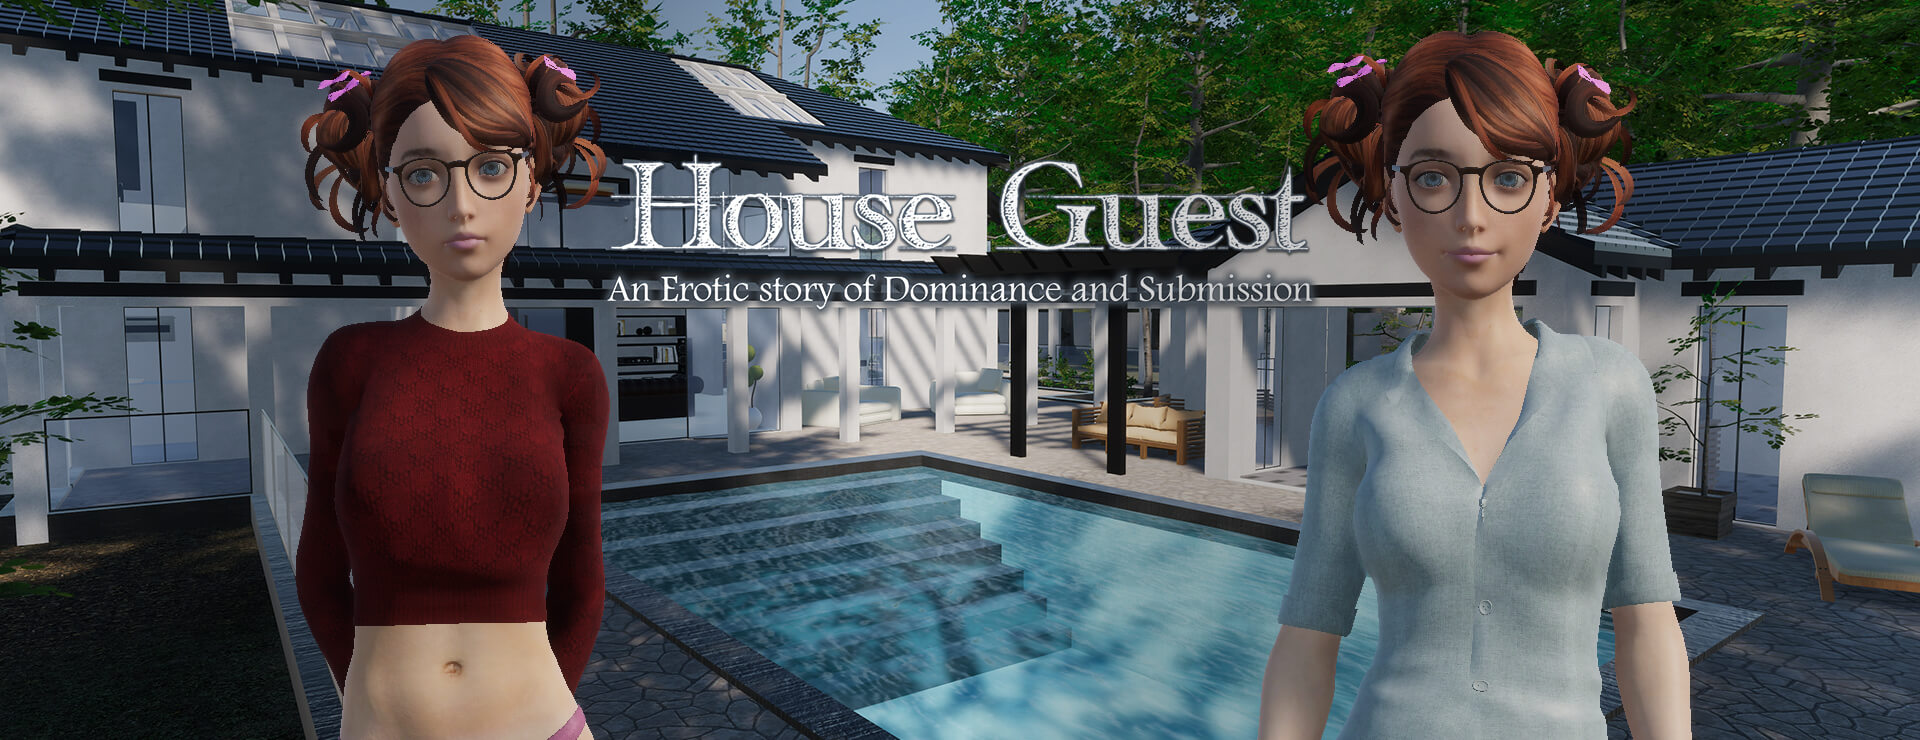 House Guest - Simulation Game